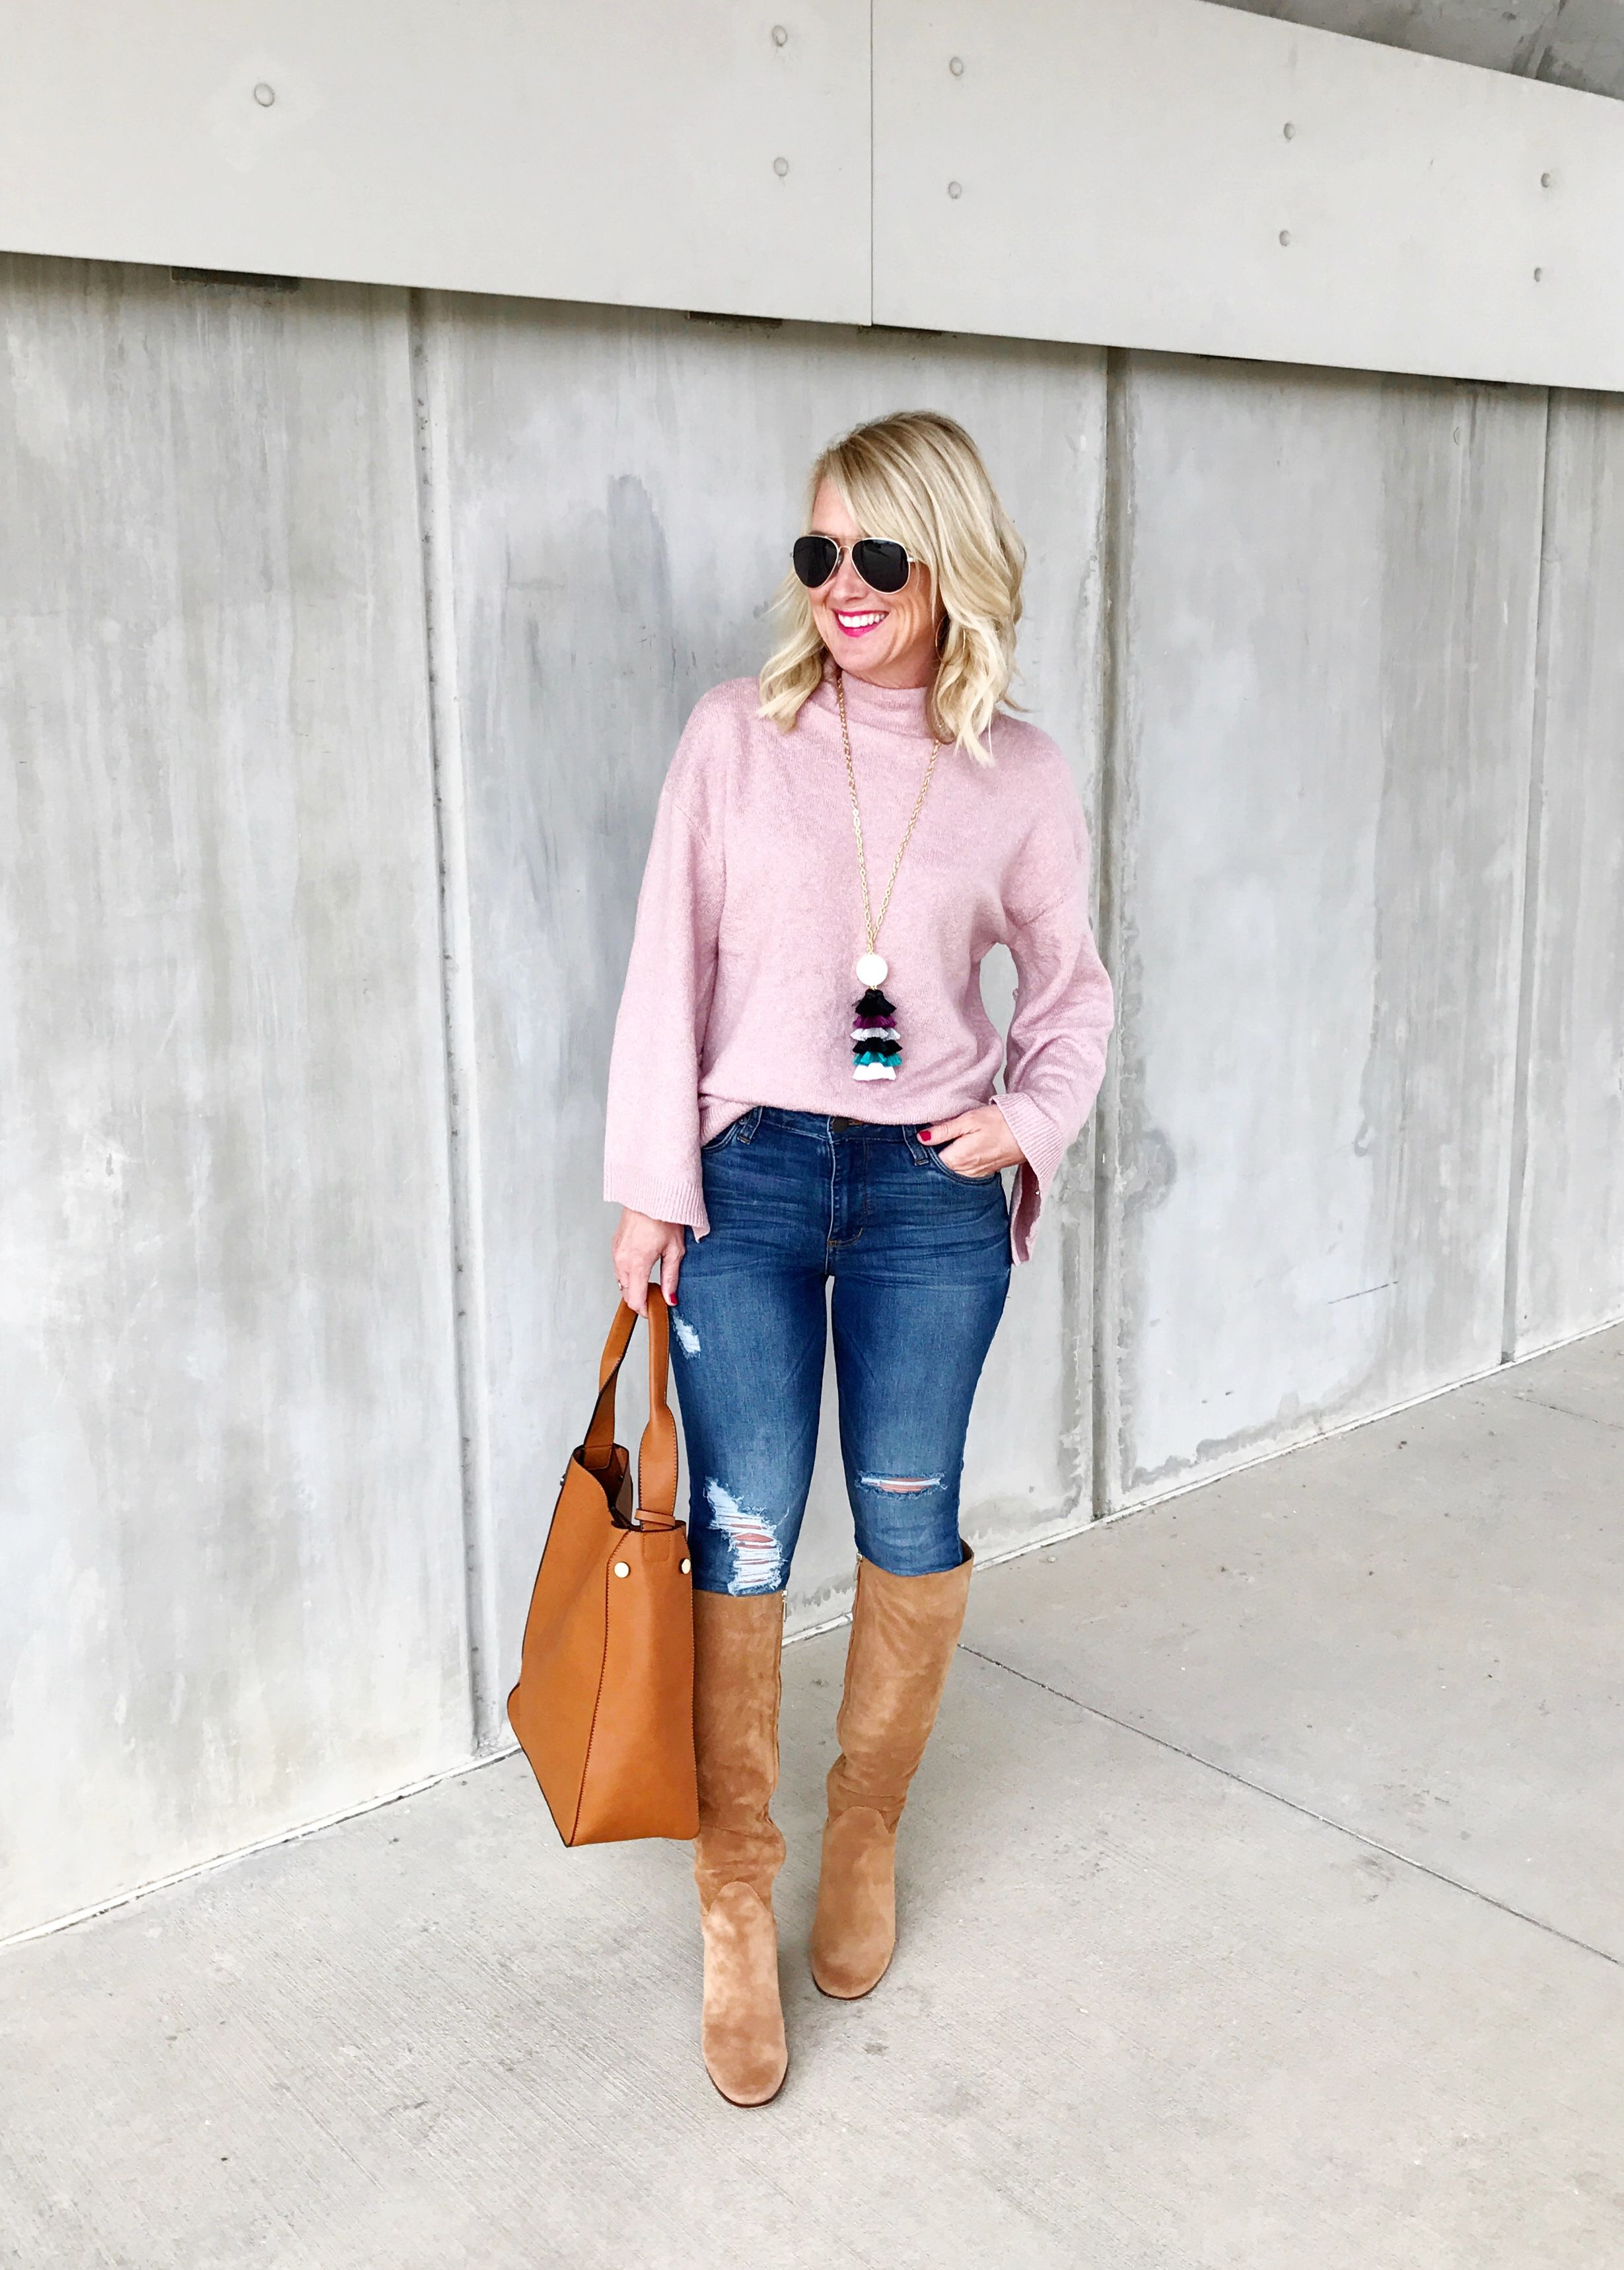 d125291612e19 Pink sweater with blue jeans and tall warm caramel boots